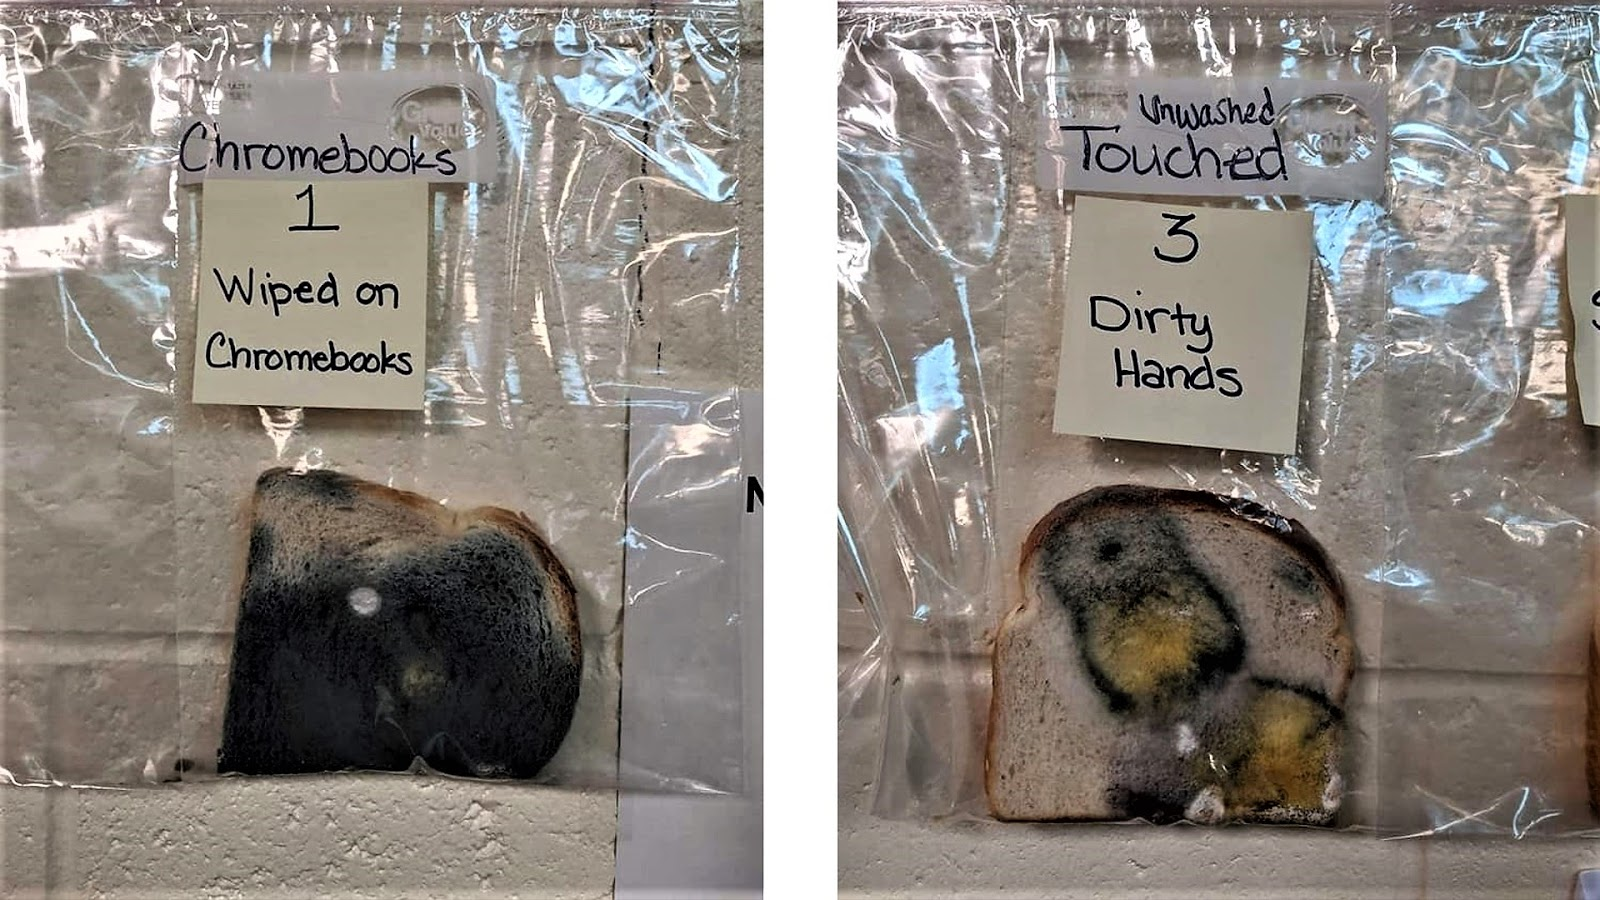 On the left is a slice of bread used to wipe laptops. On the right is a slice that children touched with dirty hands.